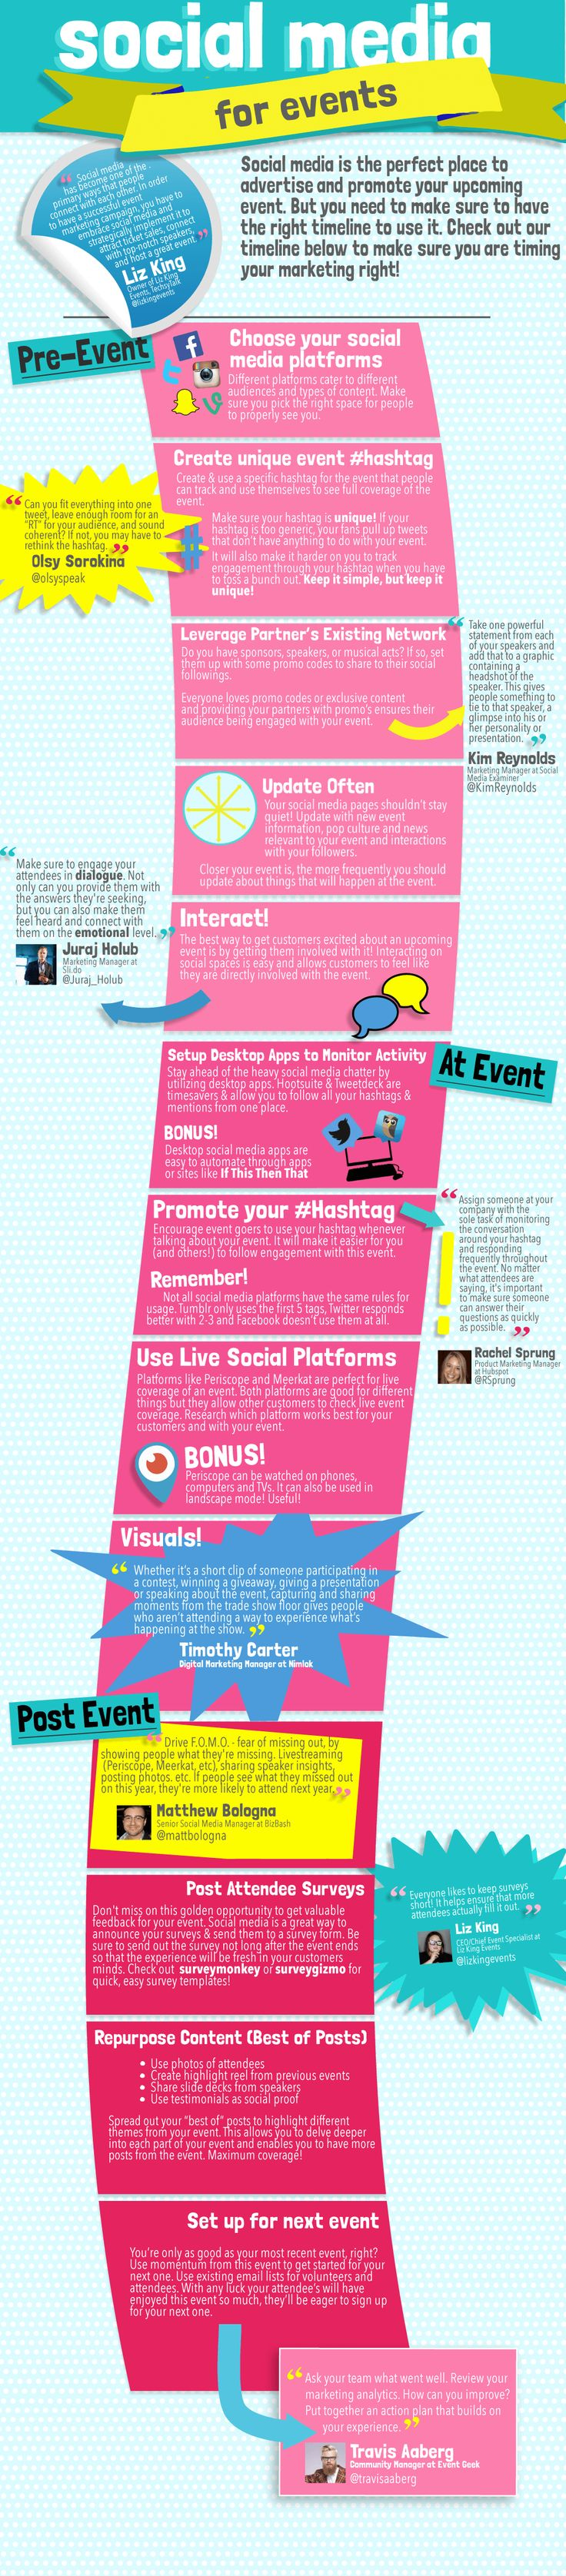 Social Media for Events Timeline Infographic | Check out our blog for more tips and tricks to use social media to promote your event! blog.ticketbud.com